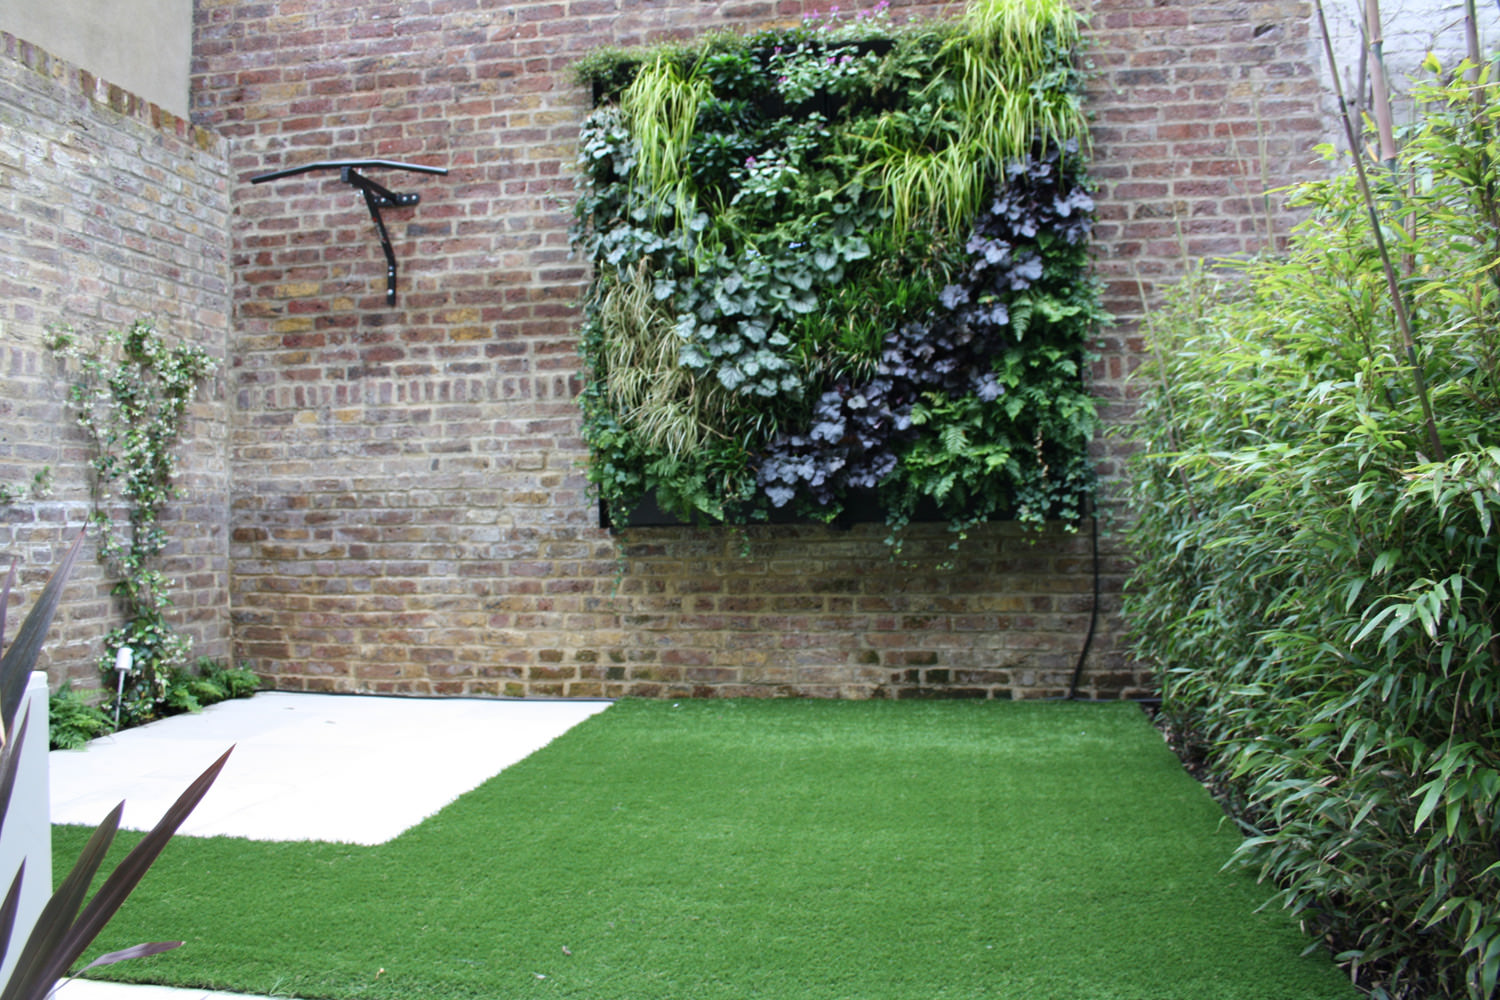 Top 10 london garden designs garden club london for Planting plans for small gardens